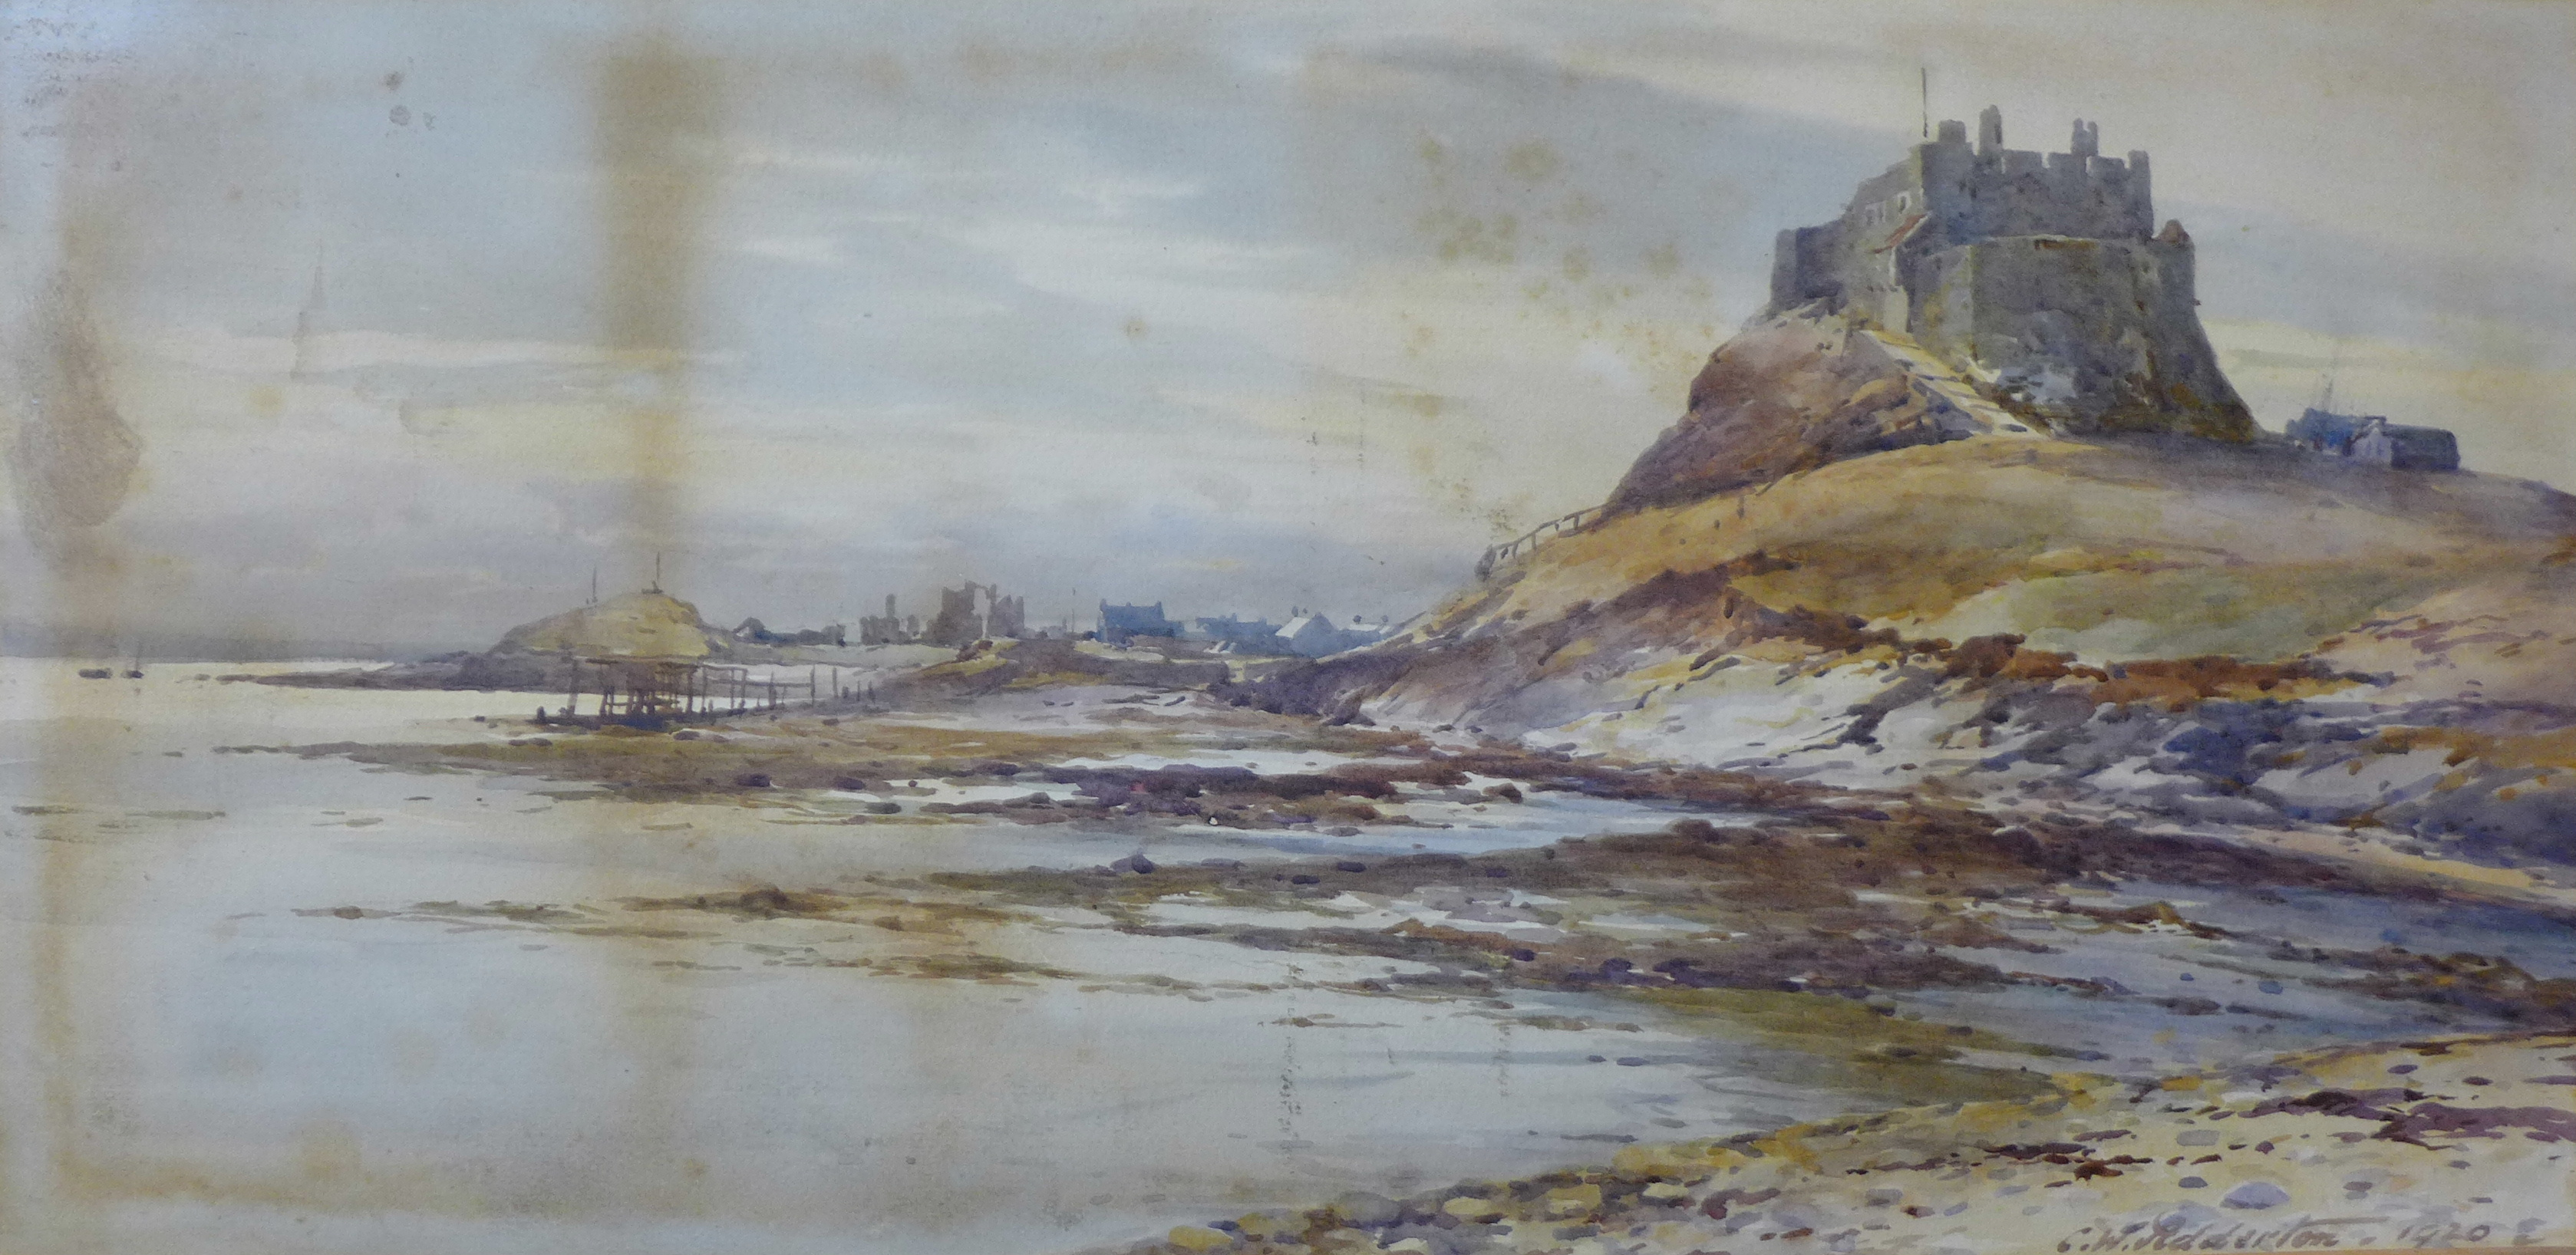 Lot 20 - Charles William Adderton, Lindisfarne, watercolour, 29 x 59cms,